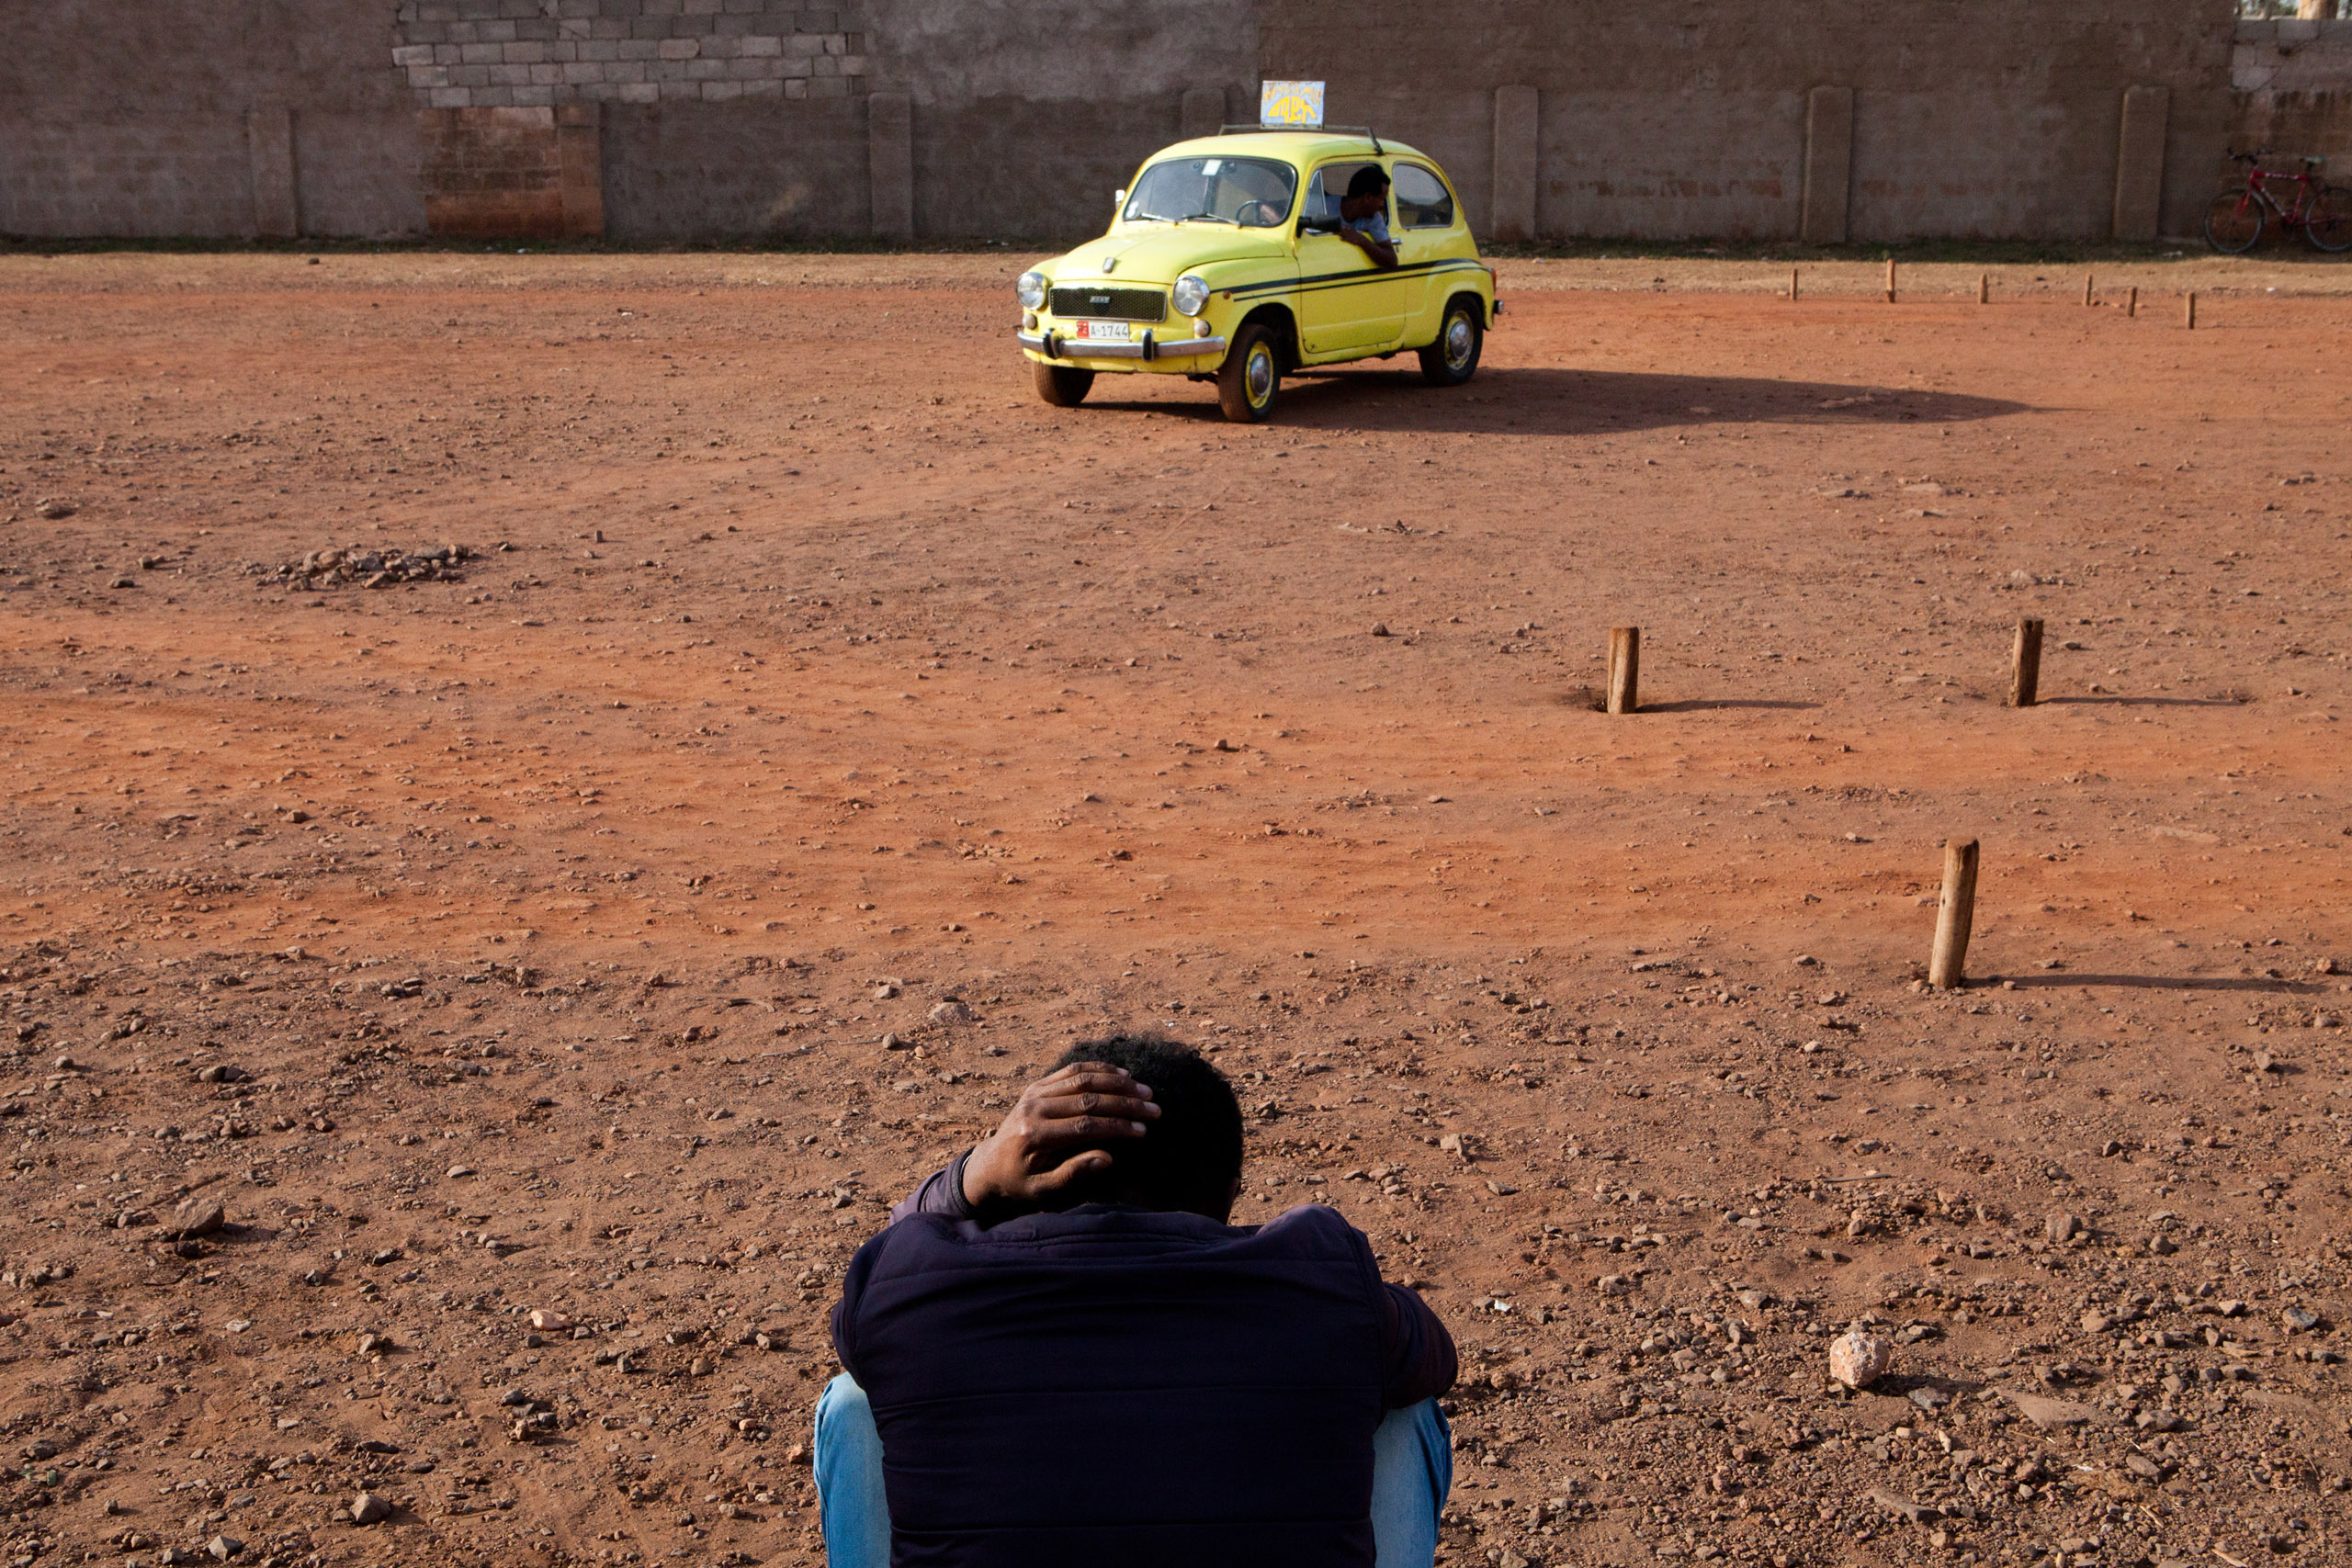 Fiat 600 used for driving test in Asmara.